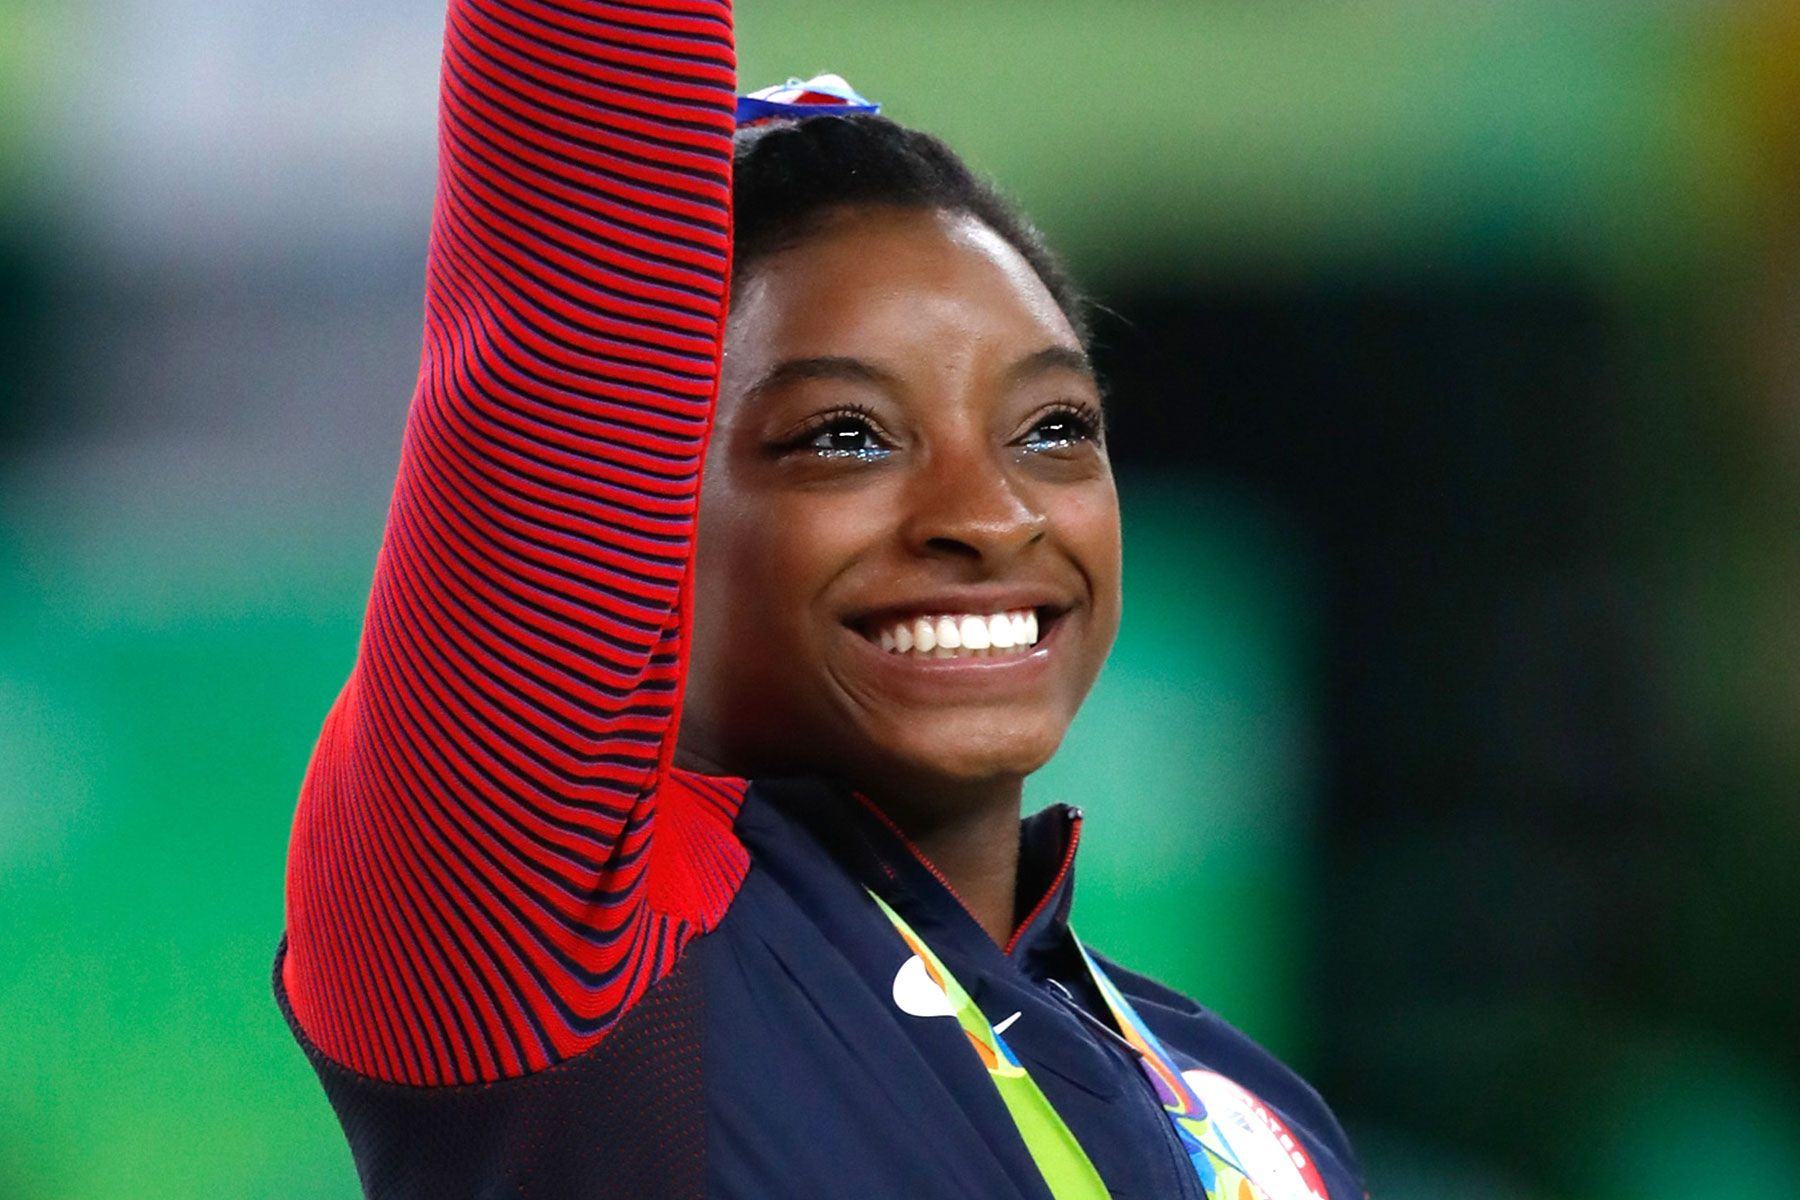 Simone Biles Withdraws From Olympic Team Competition